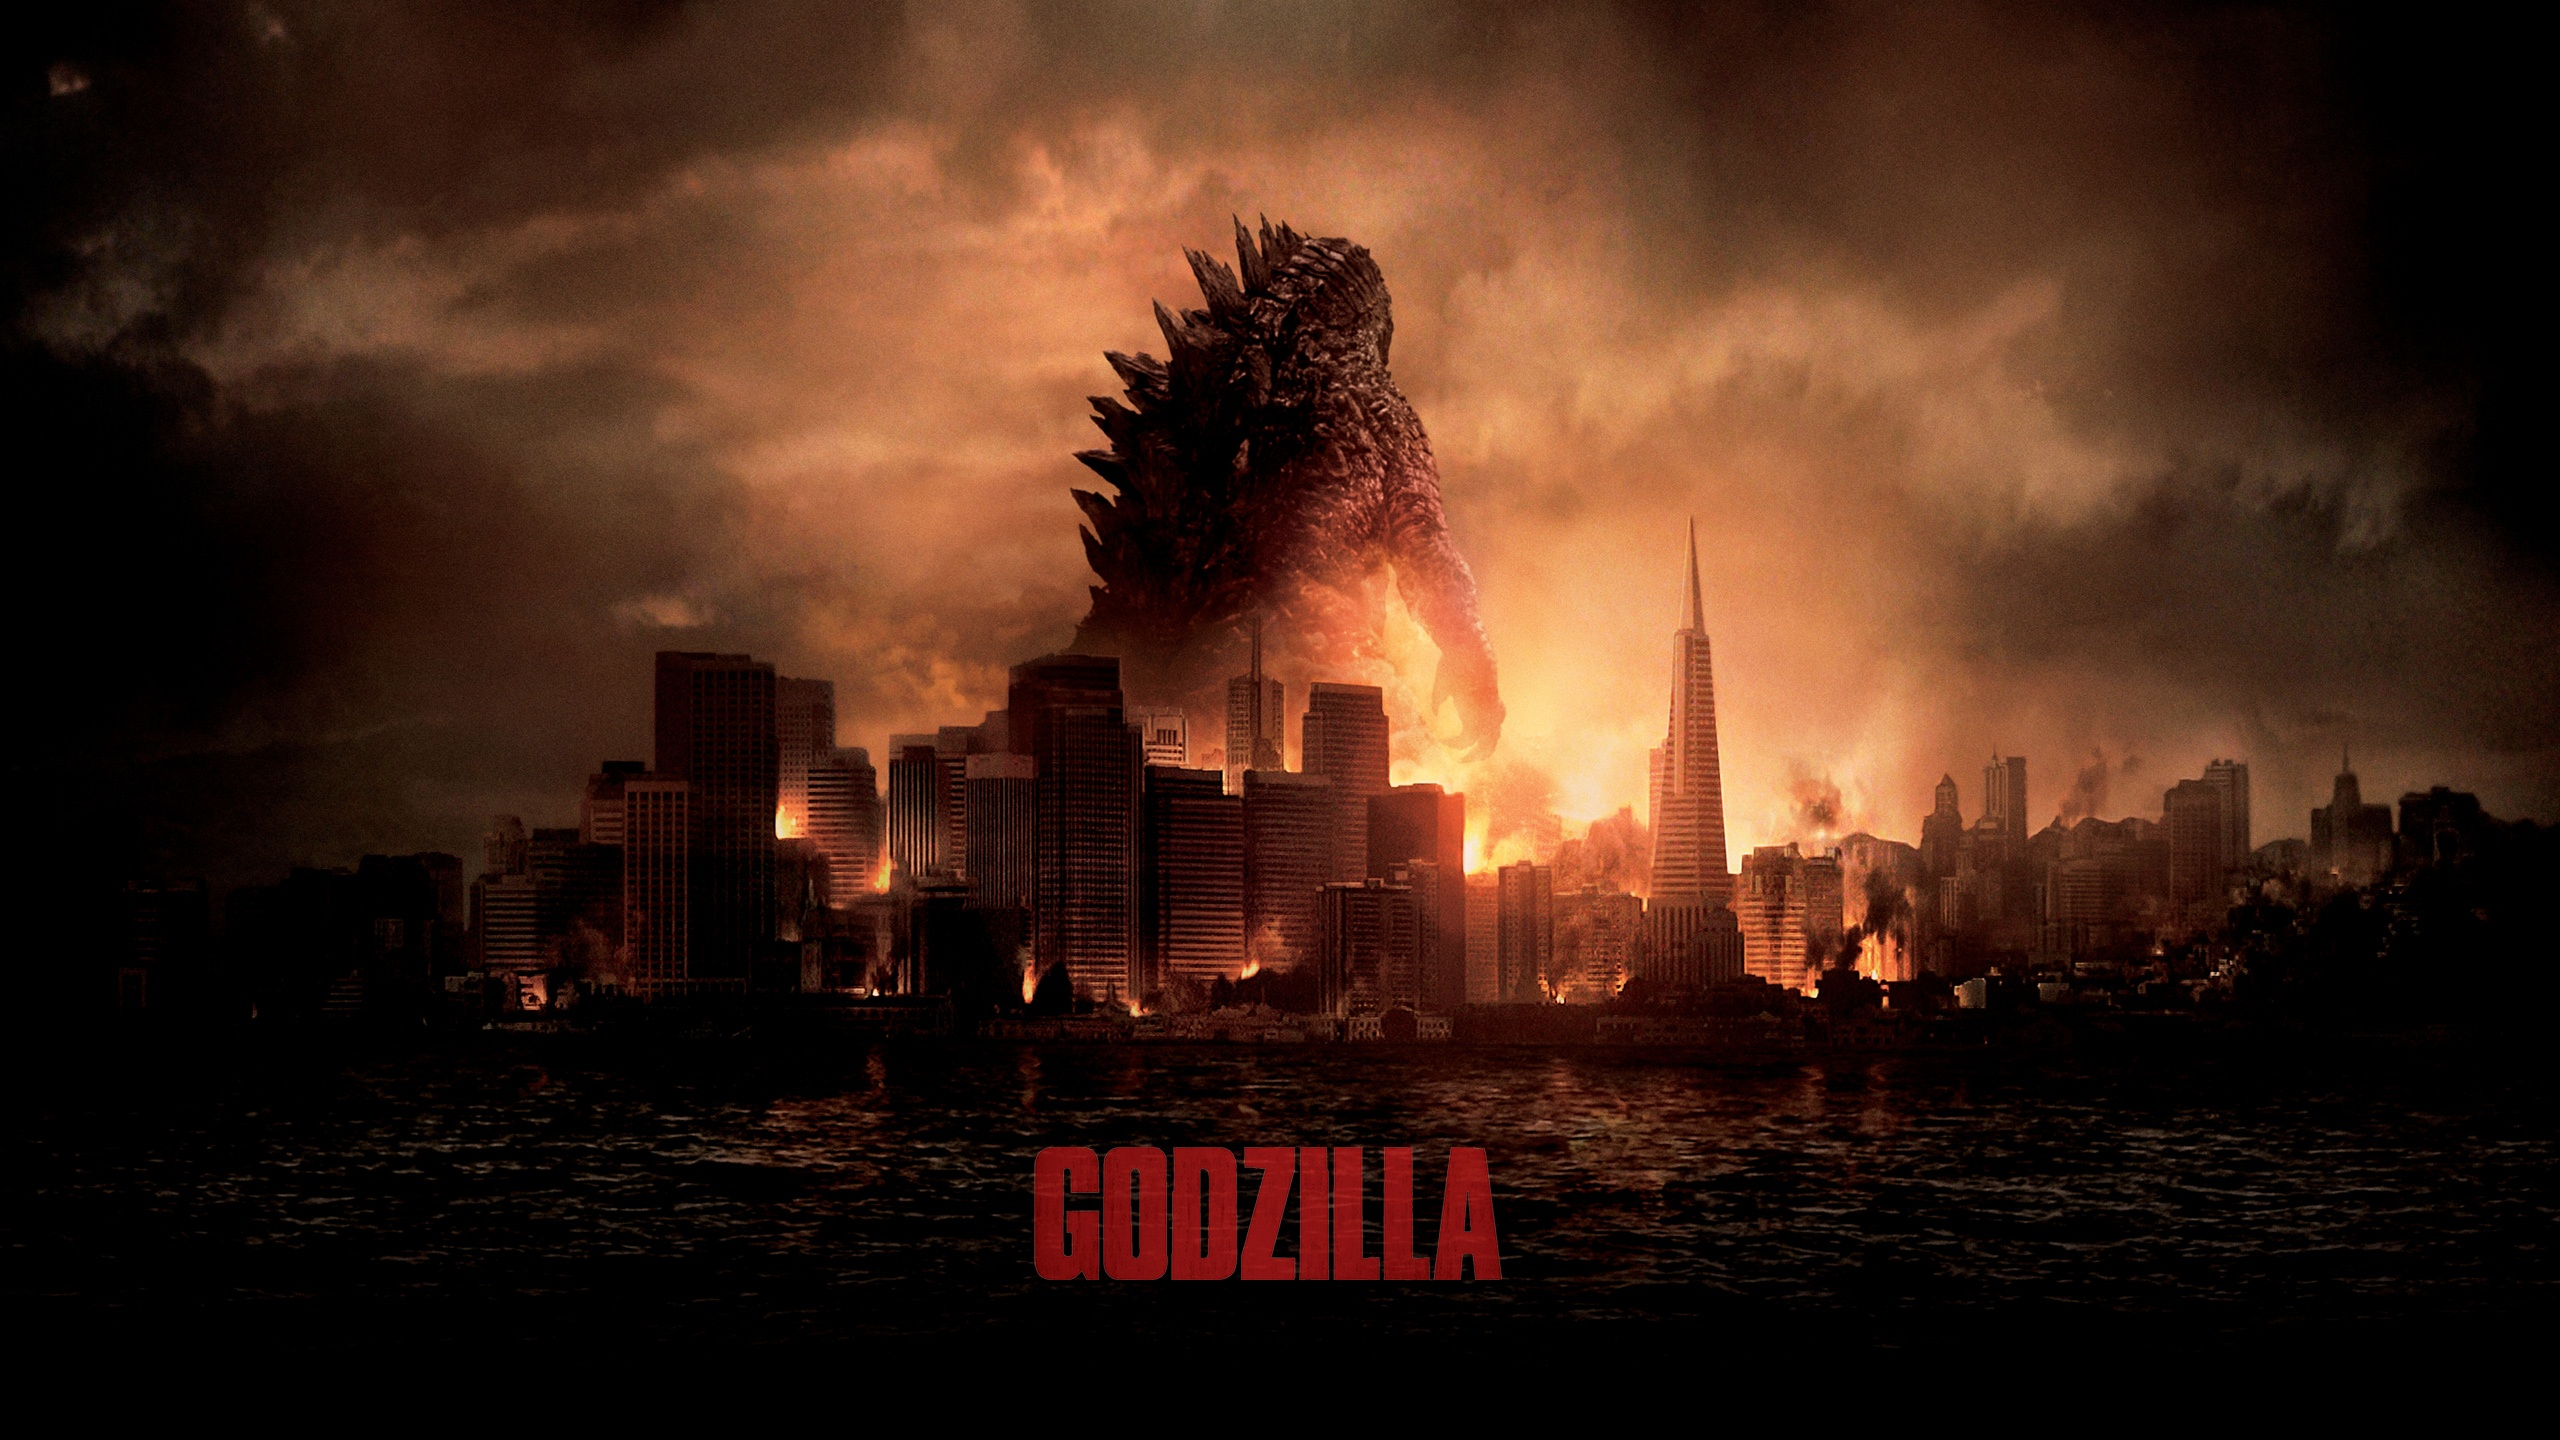 godzilla_2014_hd_wallpaper-HD